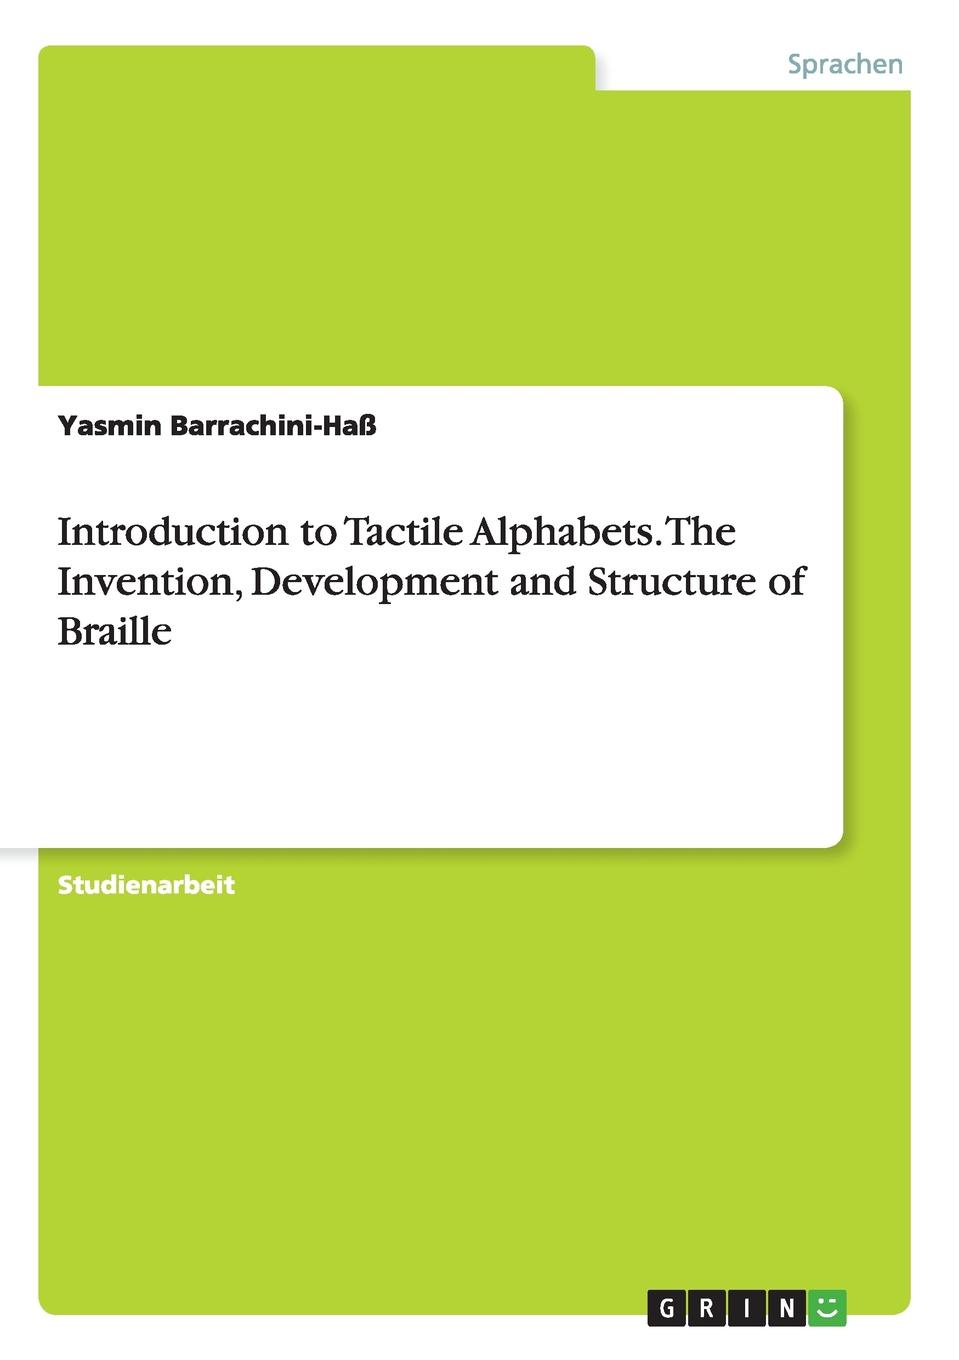 Yasmin Barrachini-Haß Introduction to Tactile Alphabets. The Invention, Development and Structure of Braille the writing system